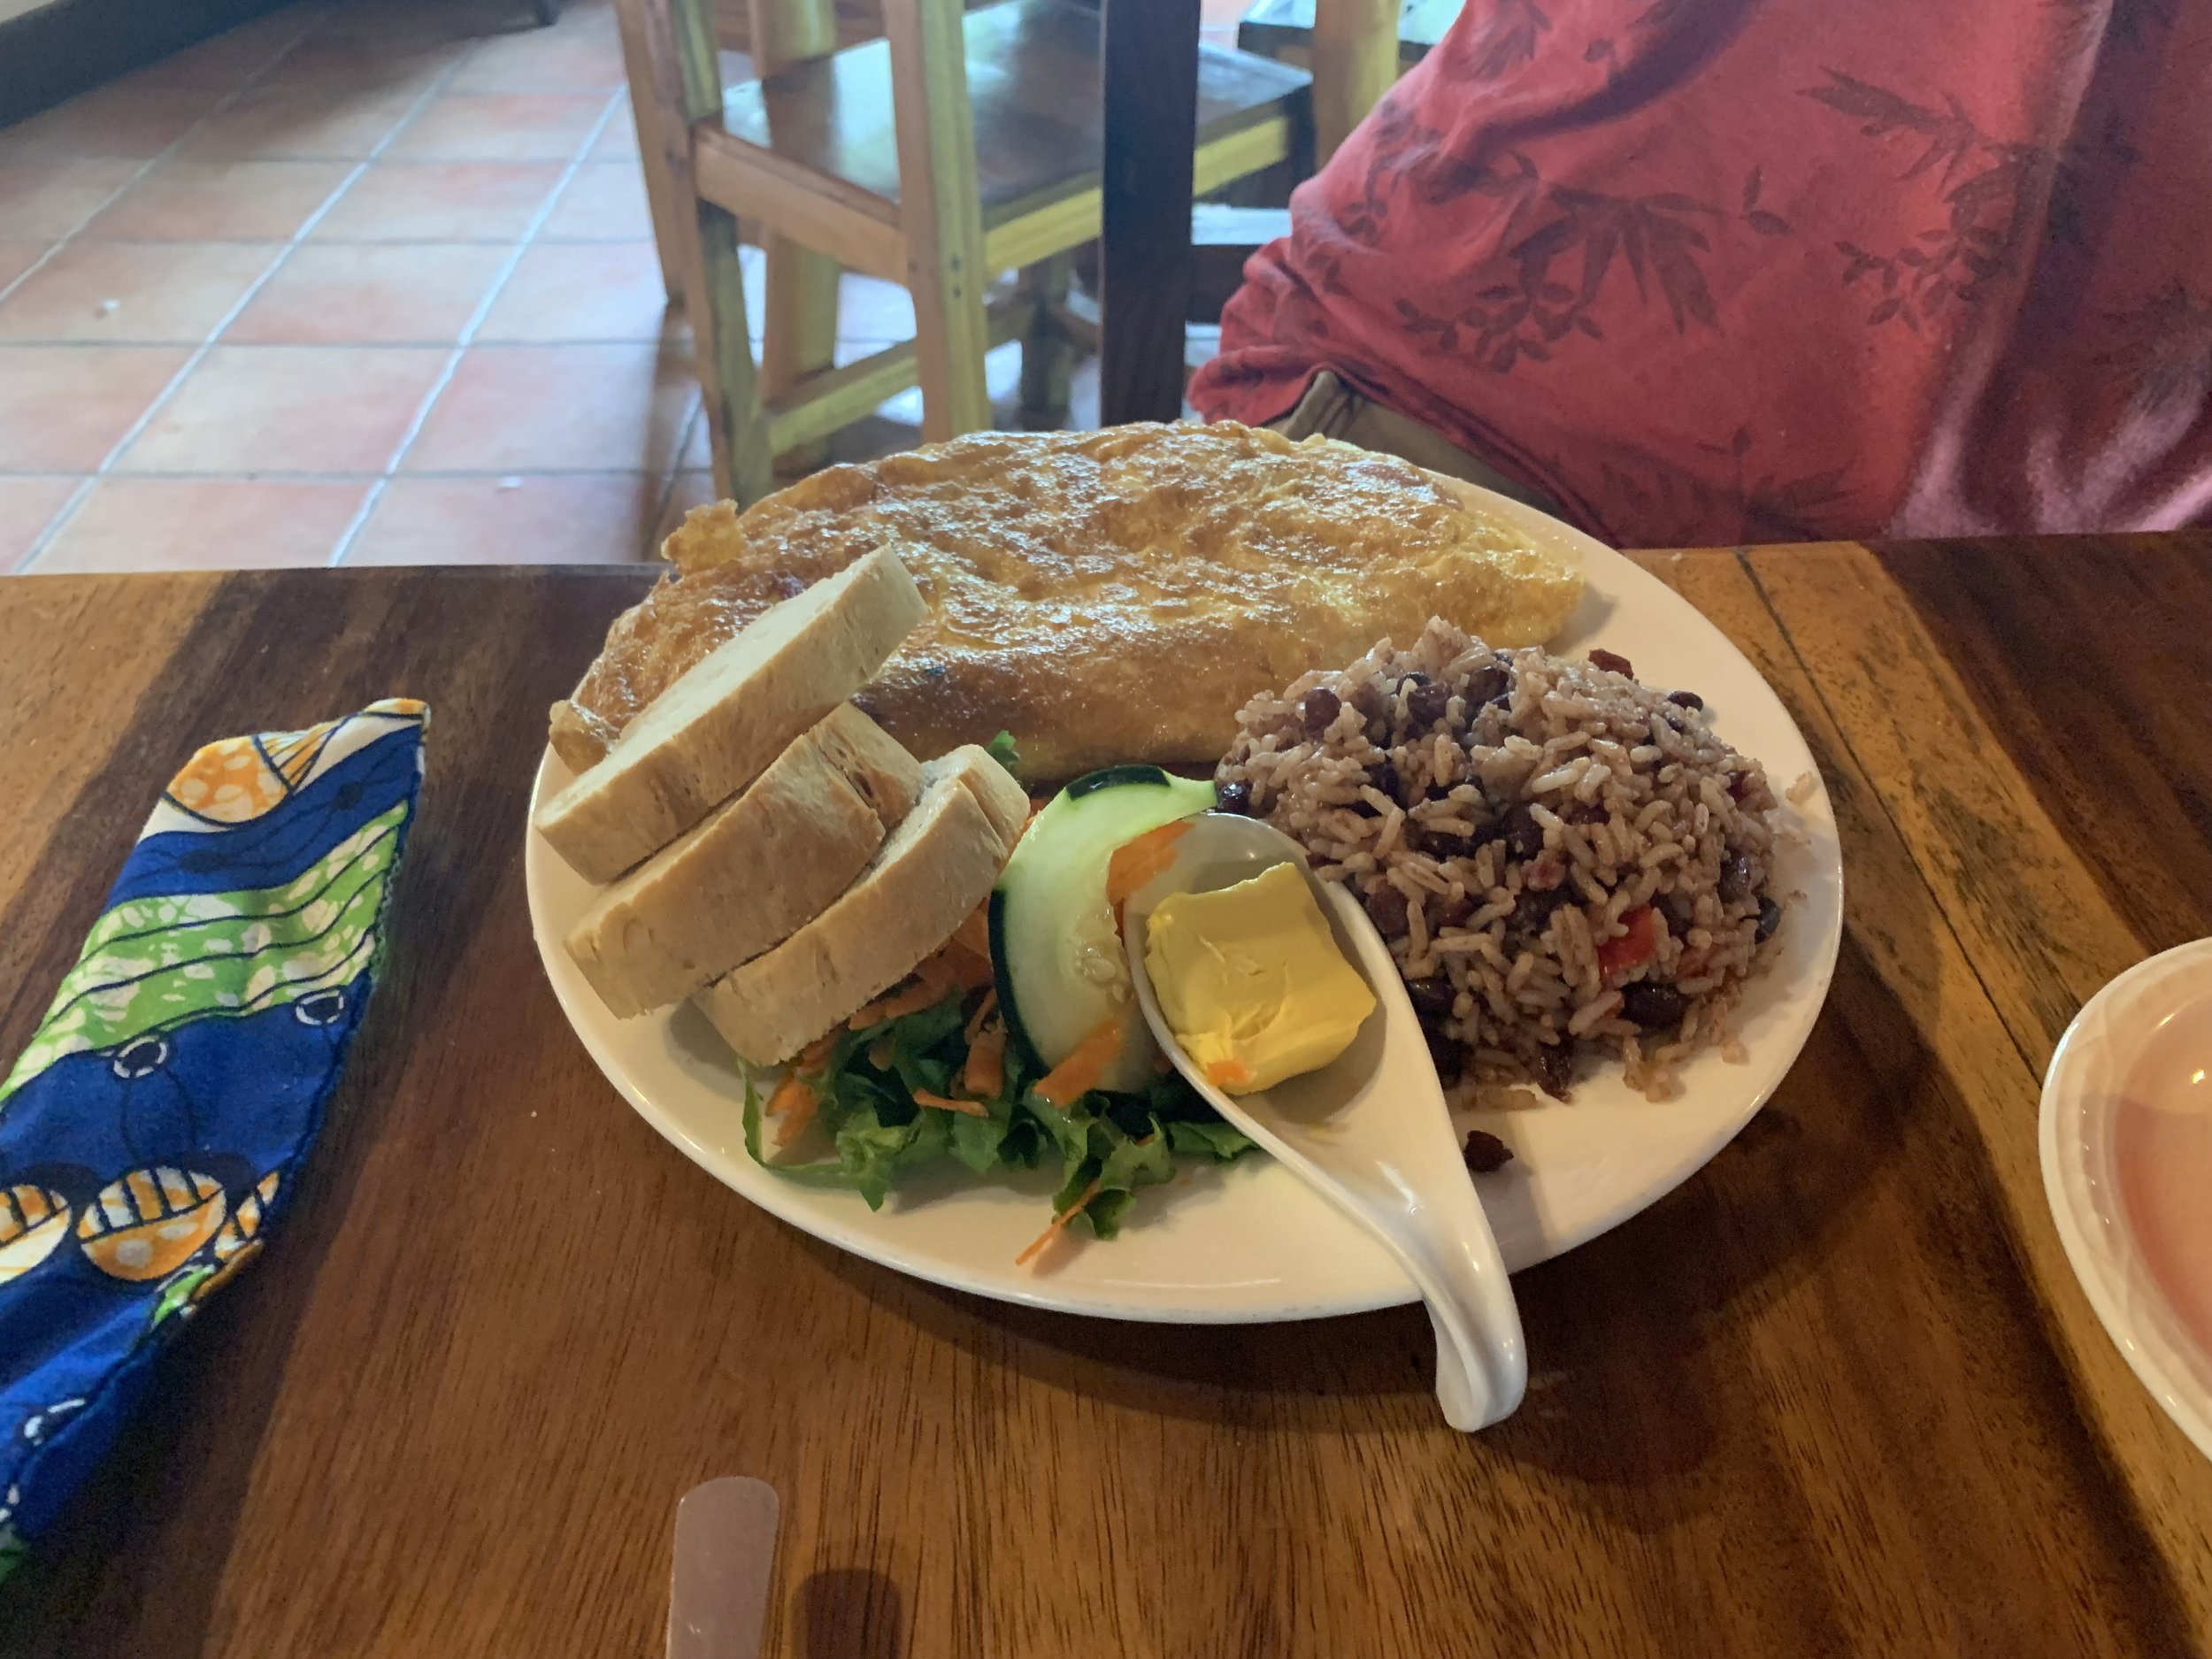 Gallo pinto alongside an omelette, salad and bread.